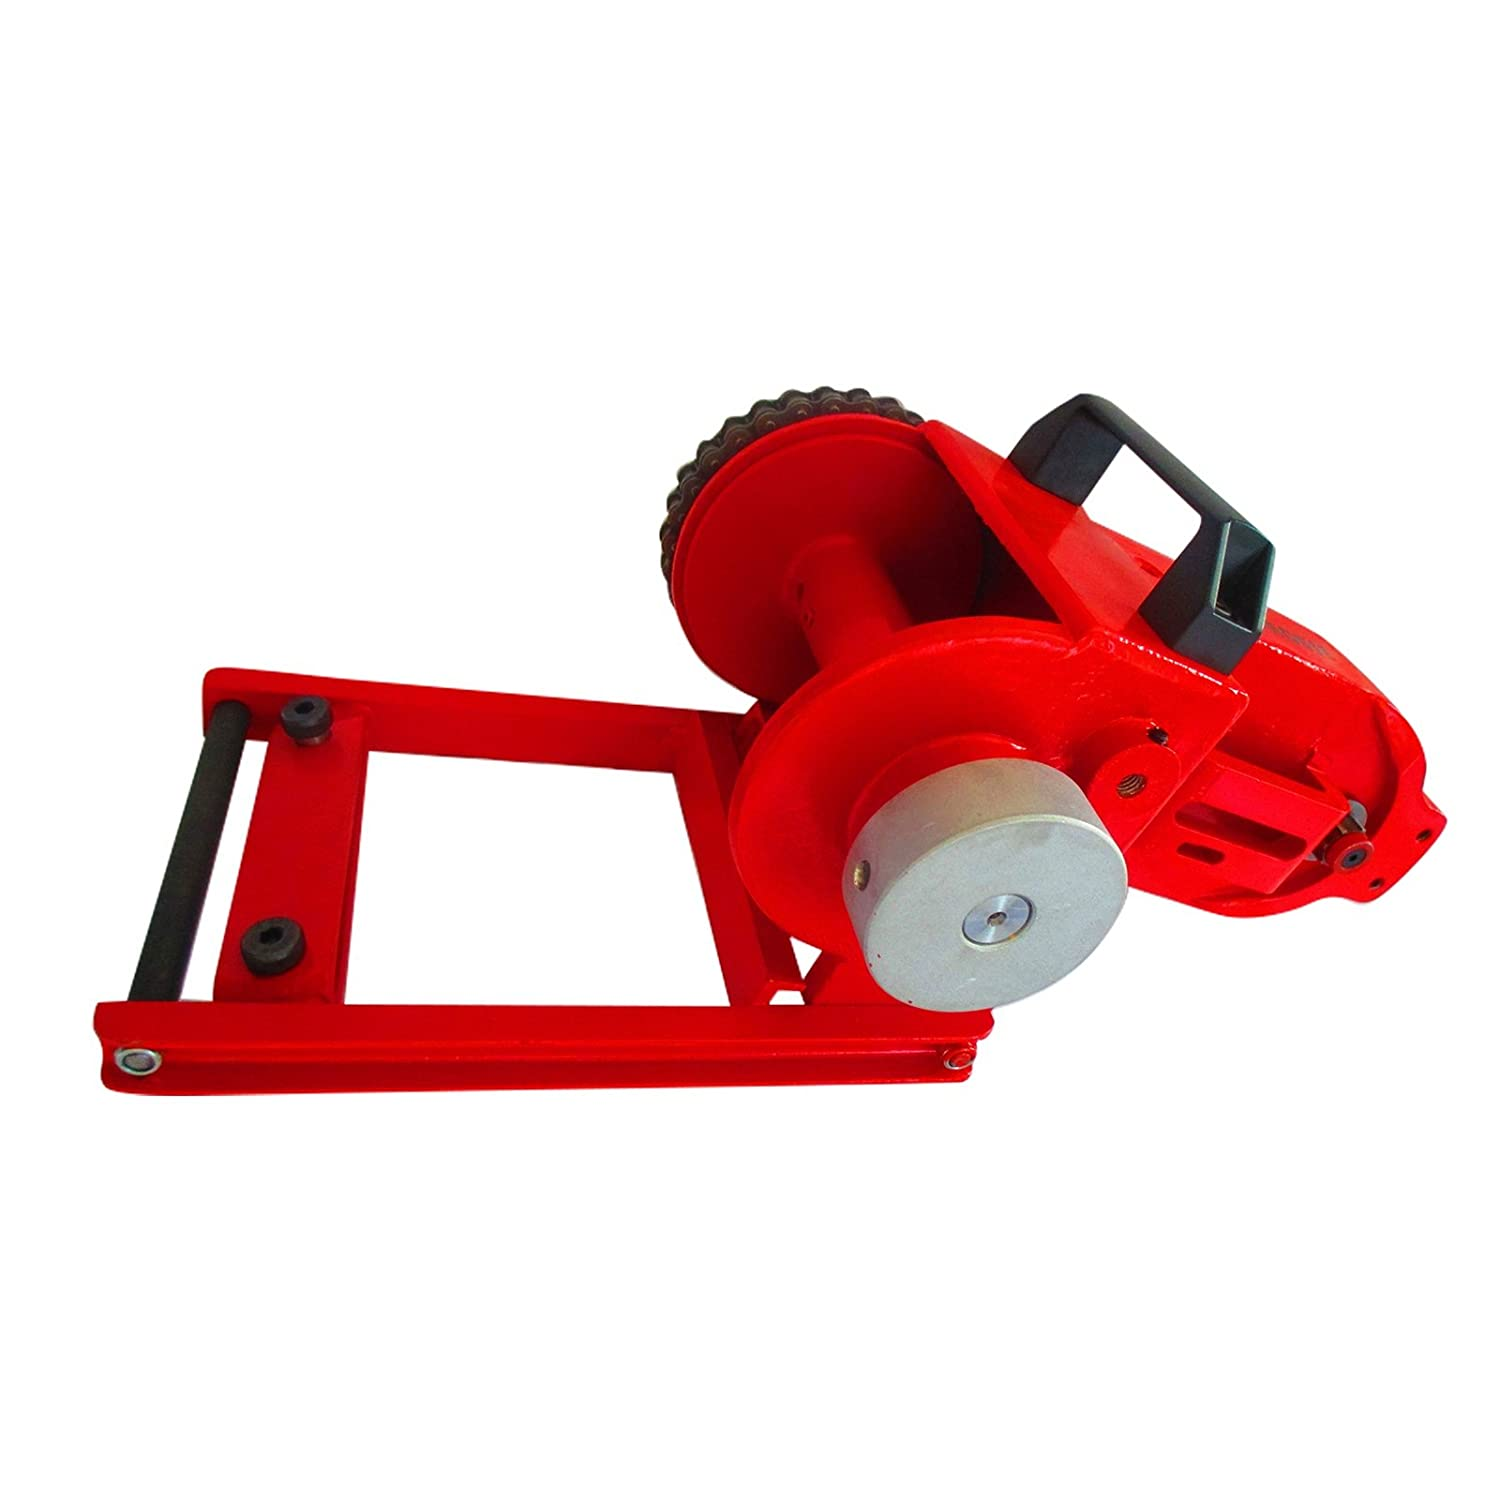 Powerhouse Lewis Chainsaw Winch Kit Powerhouse Log Splitters XM-100 8,000 lb capacity